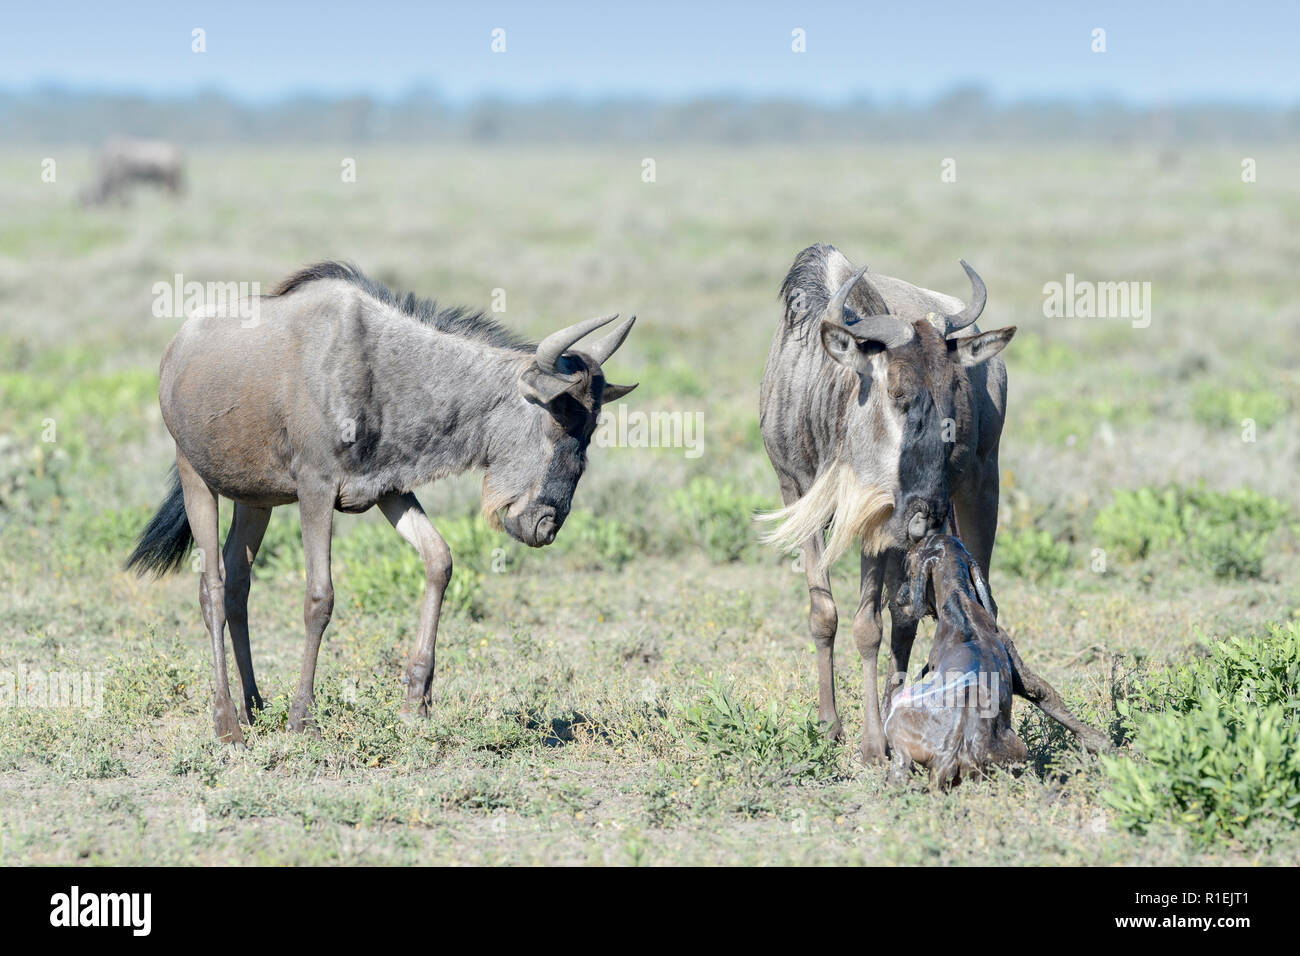 Blue Wildebeest (Connochaetes taurinus) mother with a new born baby and family looking, Ngorongoro conservation area, Tanzania. - Stock Image